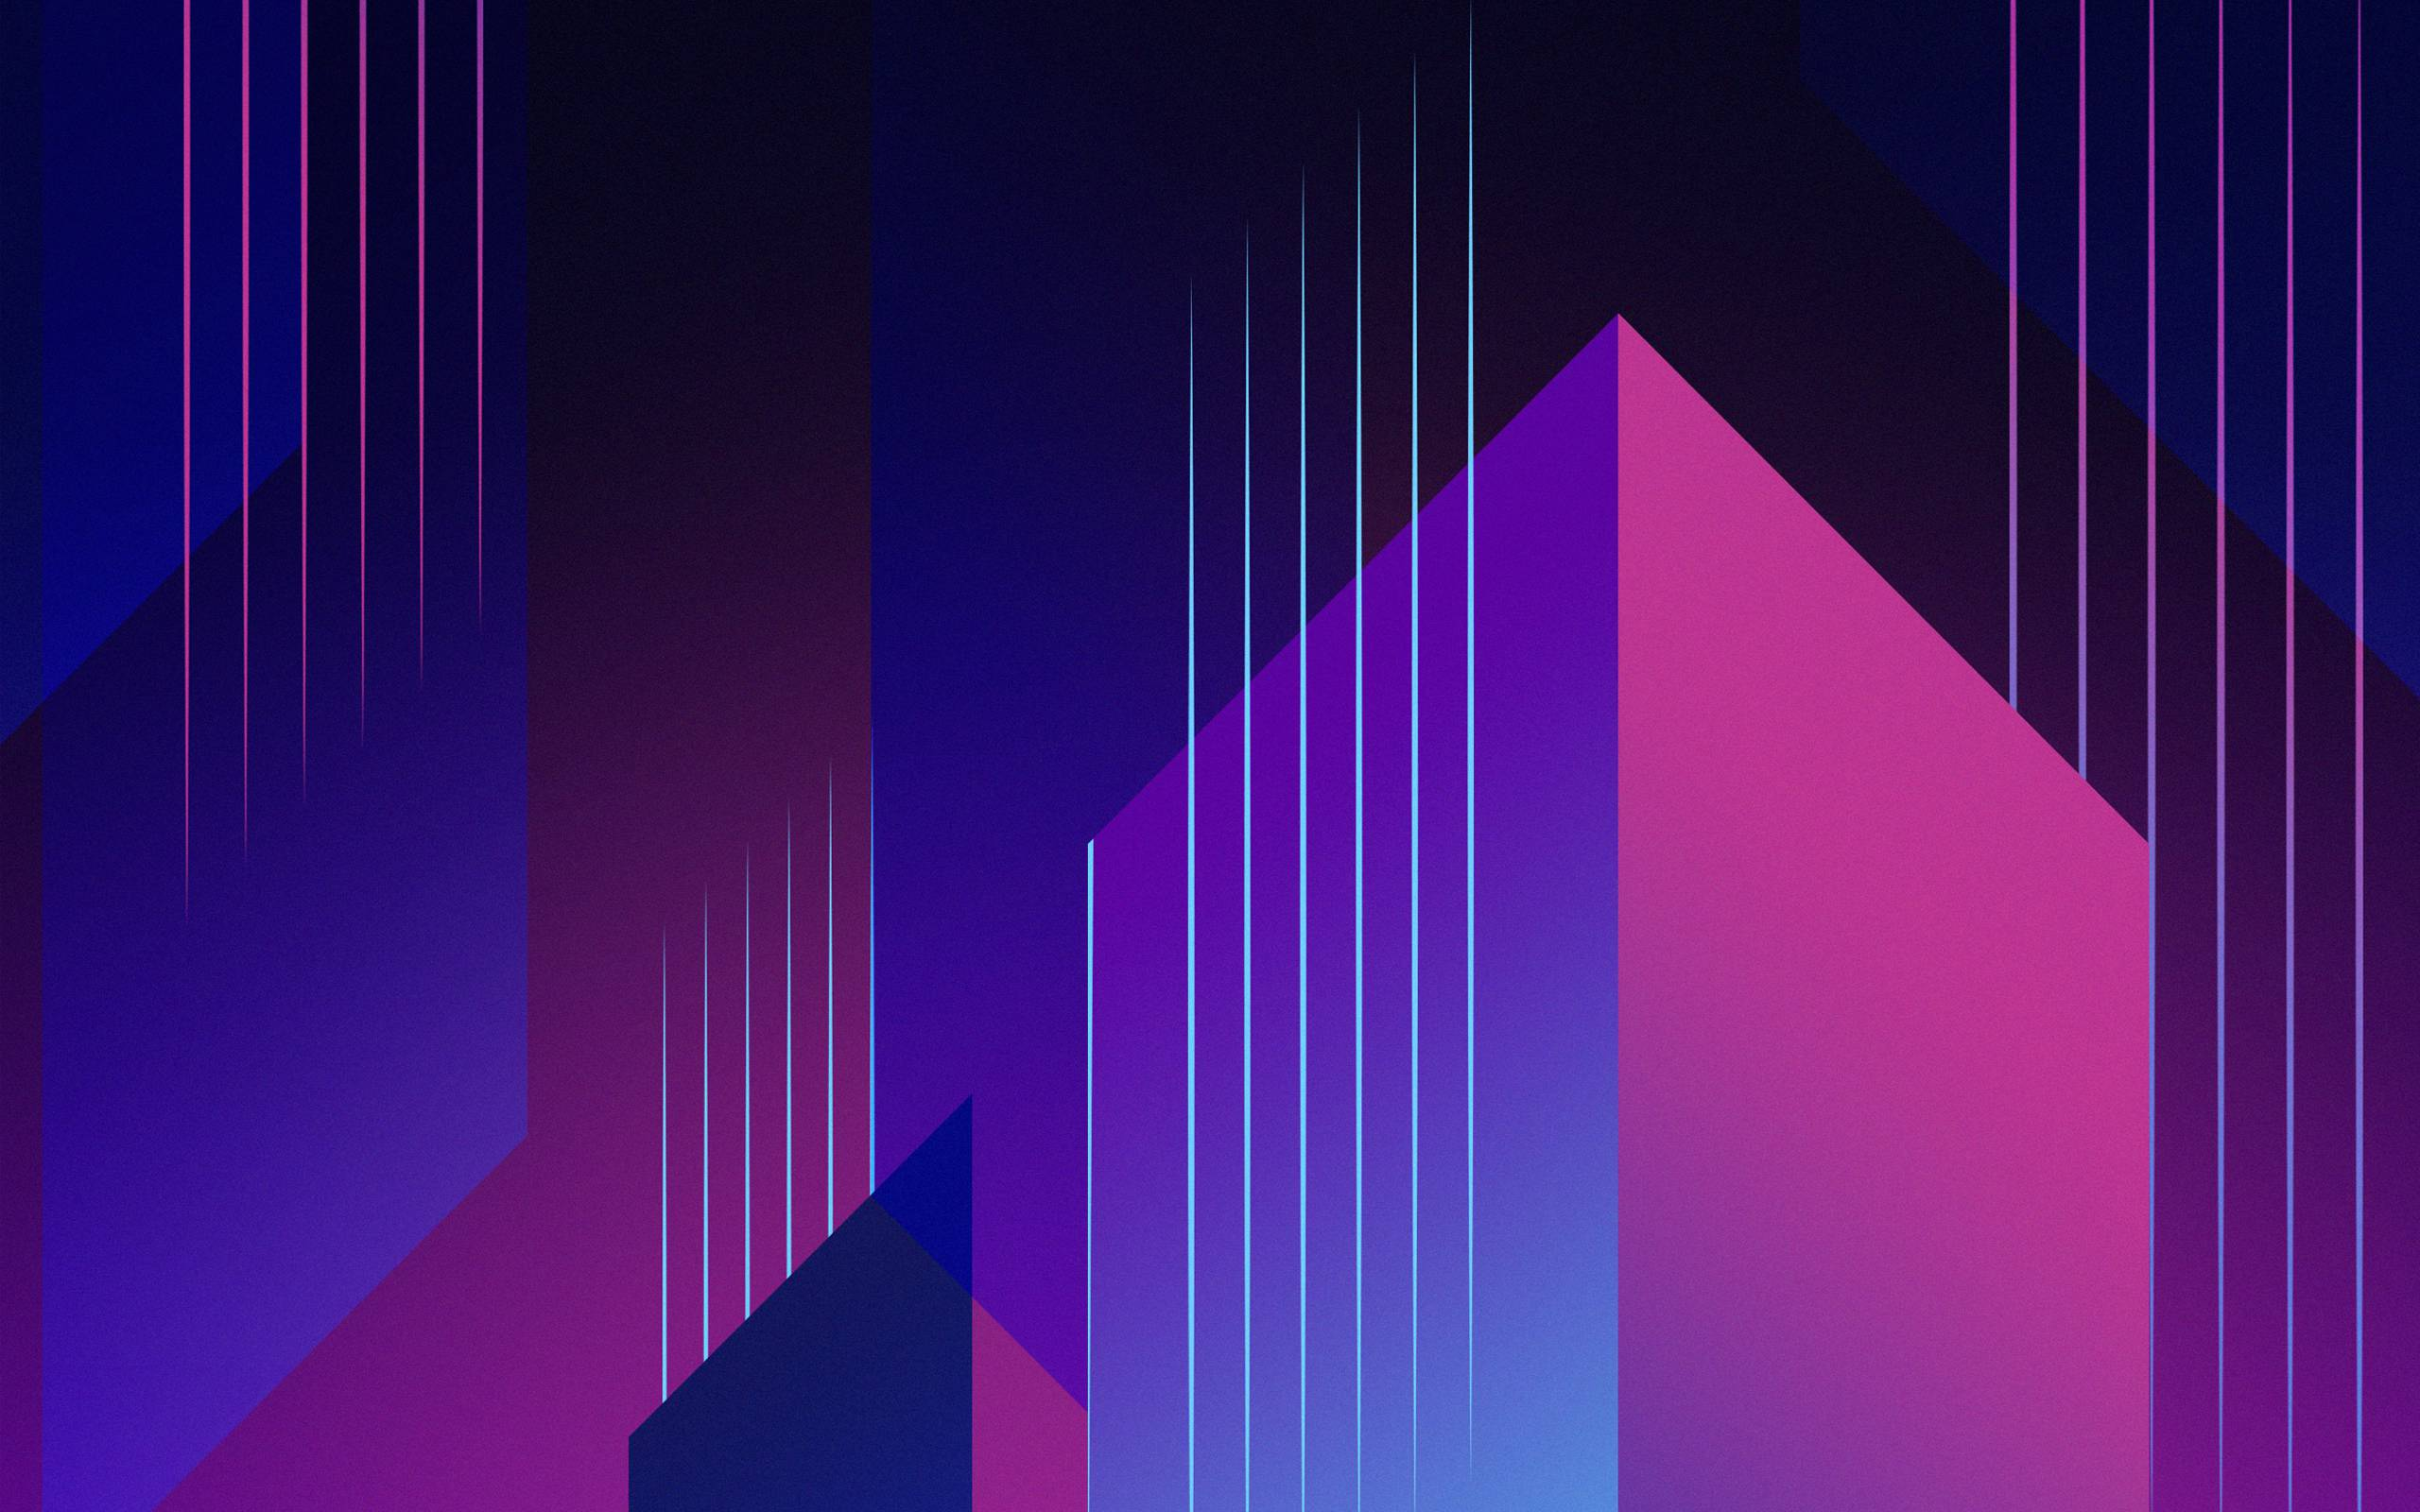 Sharp Lines HTC U11 Plus Stock Wallpaper